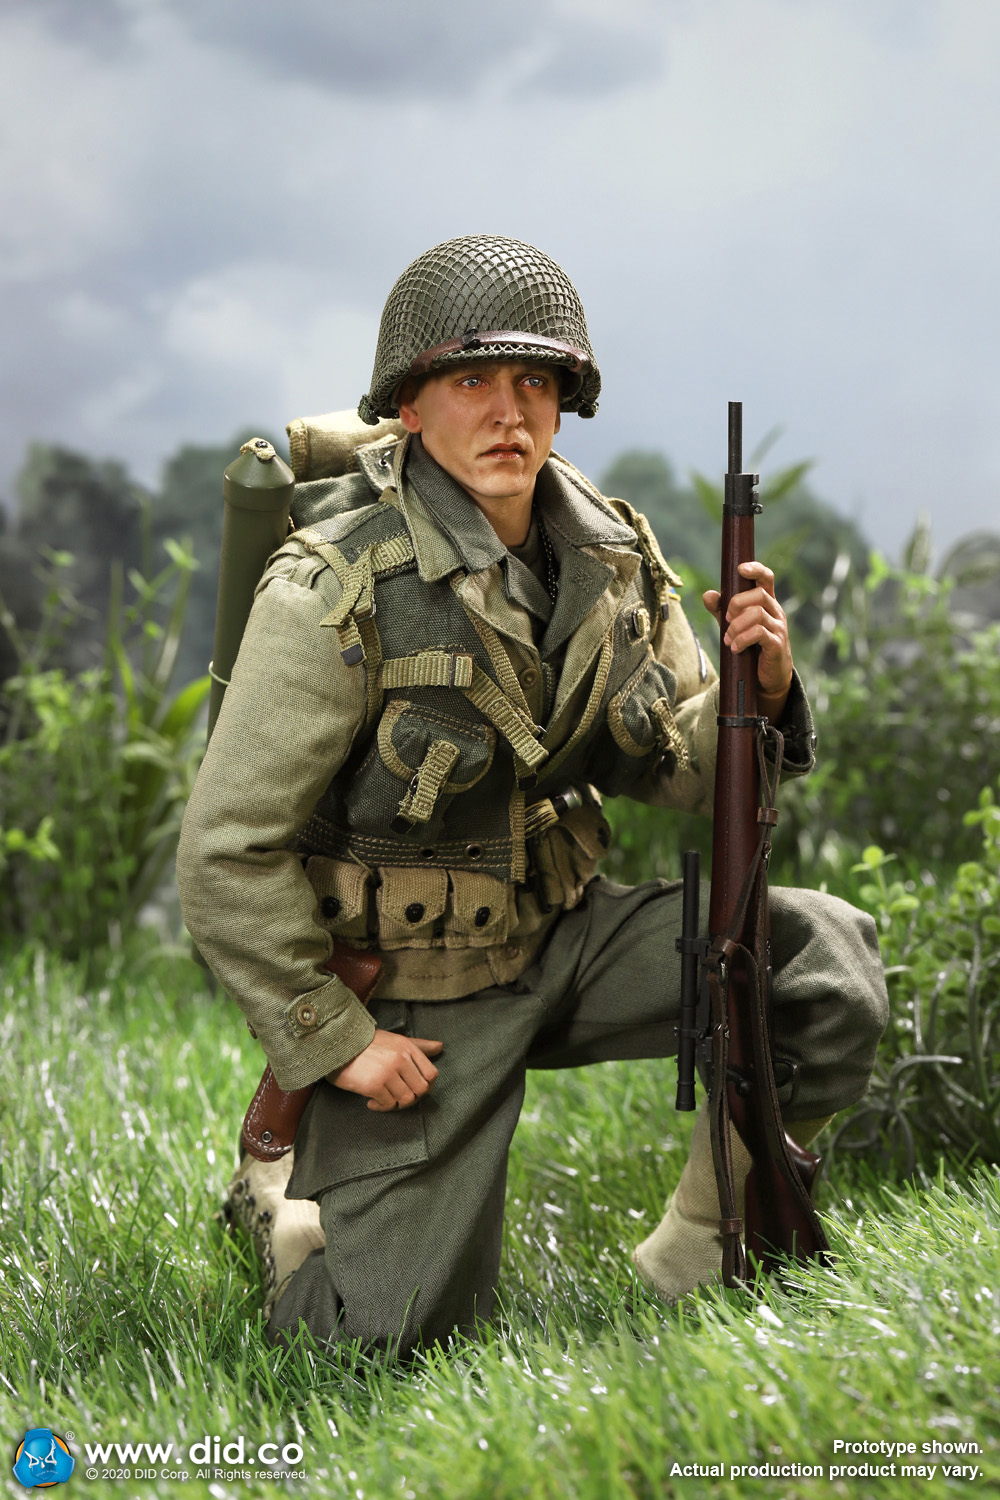 DiD - NEW PRODUCT: DiD: A80144 WWII US 2nd Ranger Battalion Series 4 Private Jackson 3621